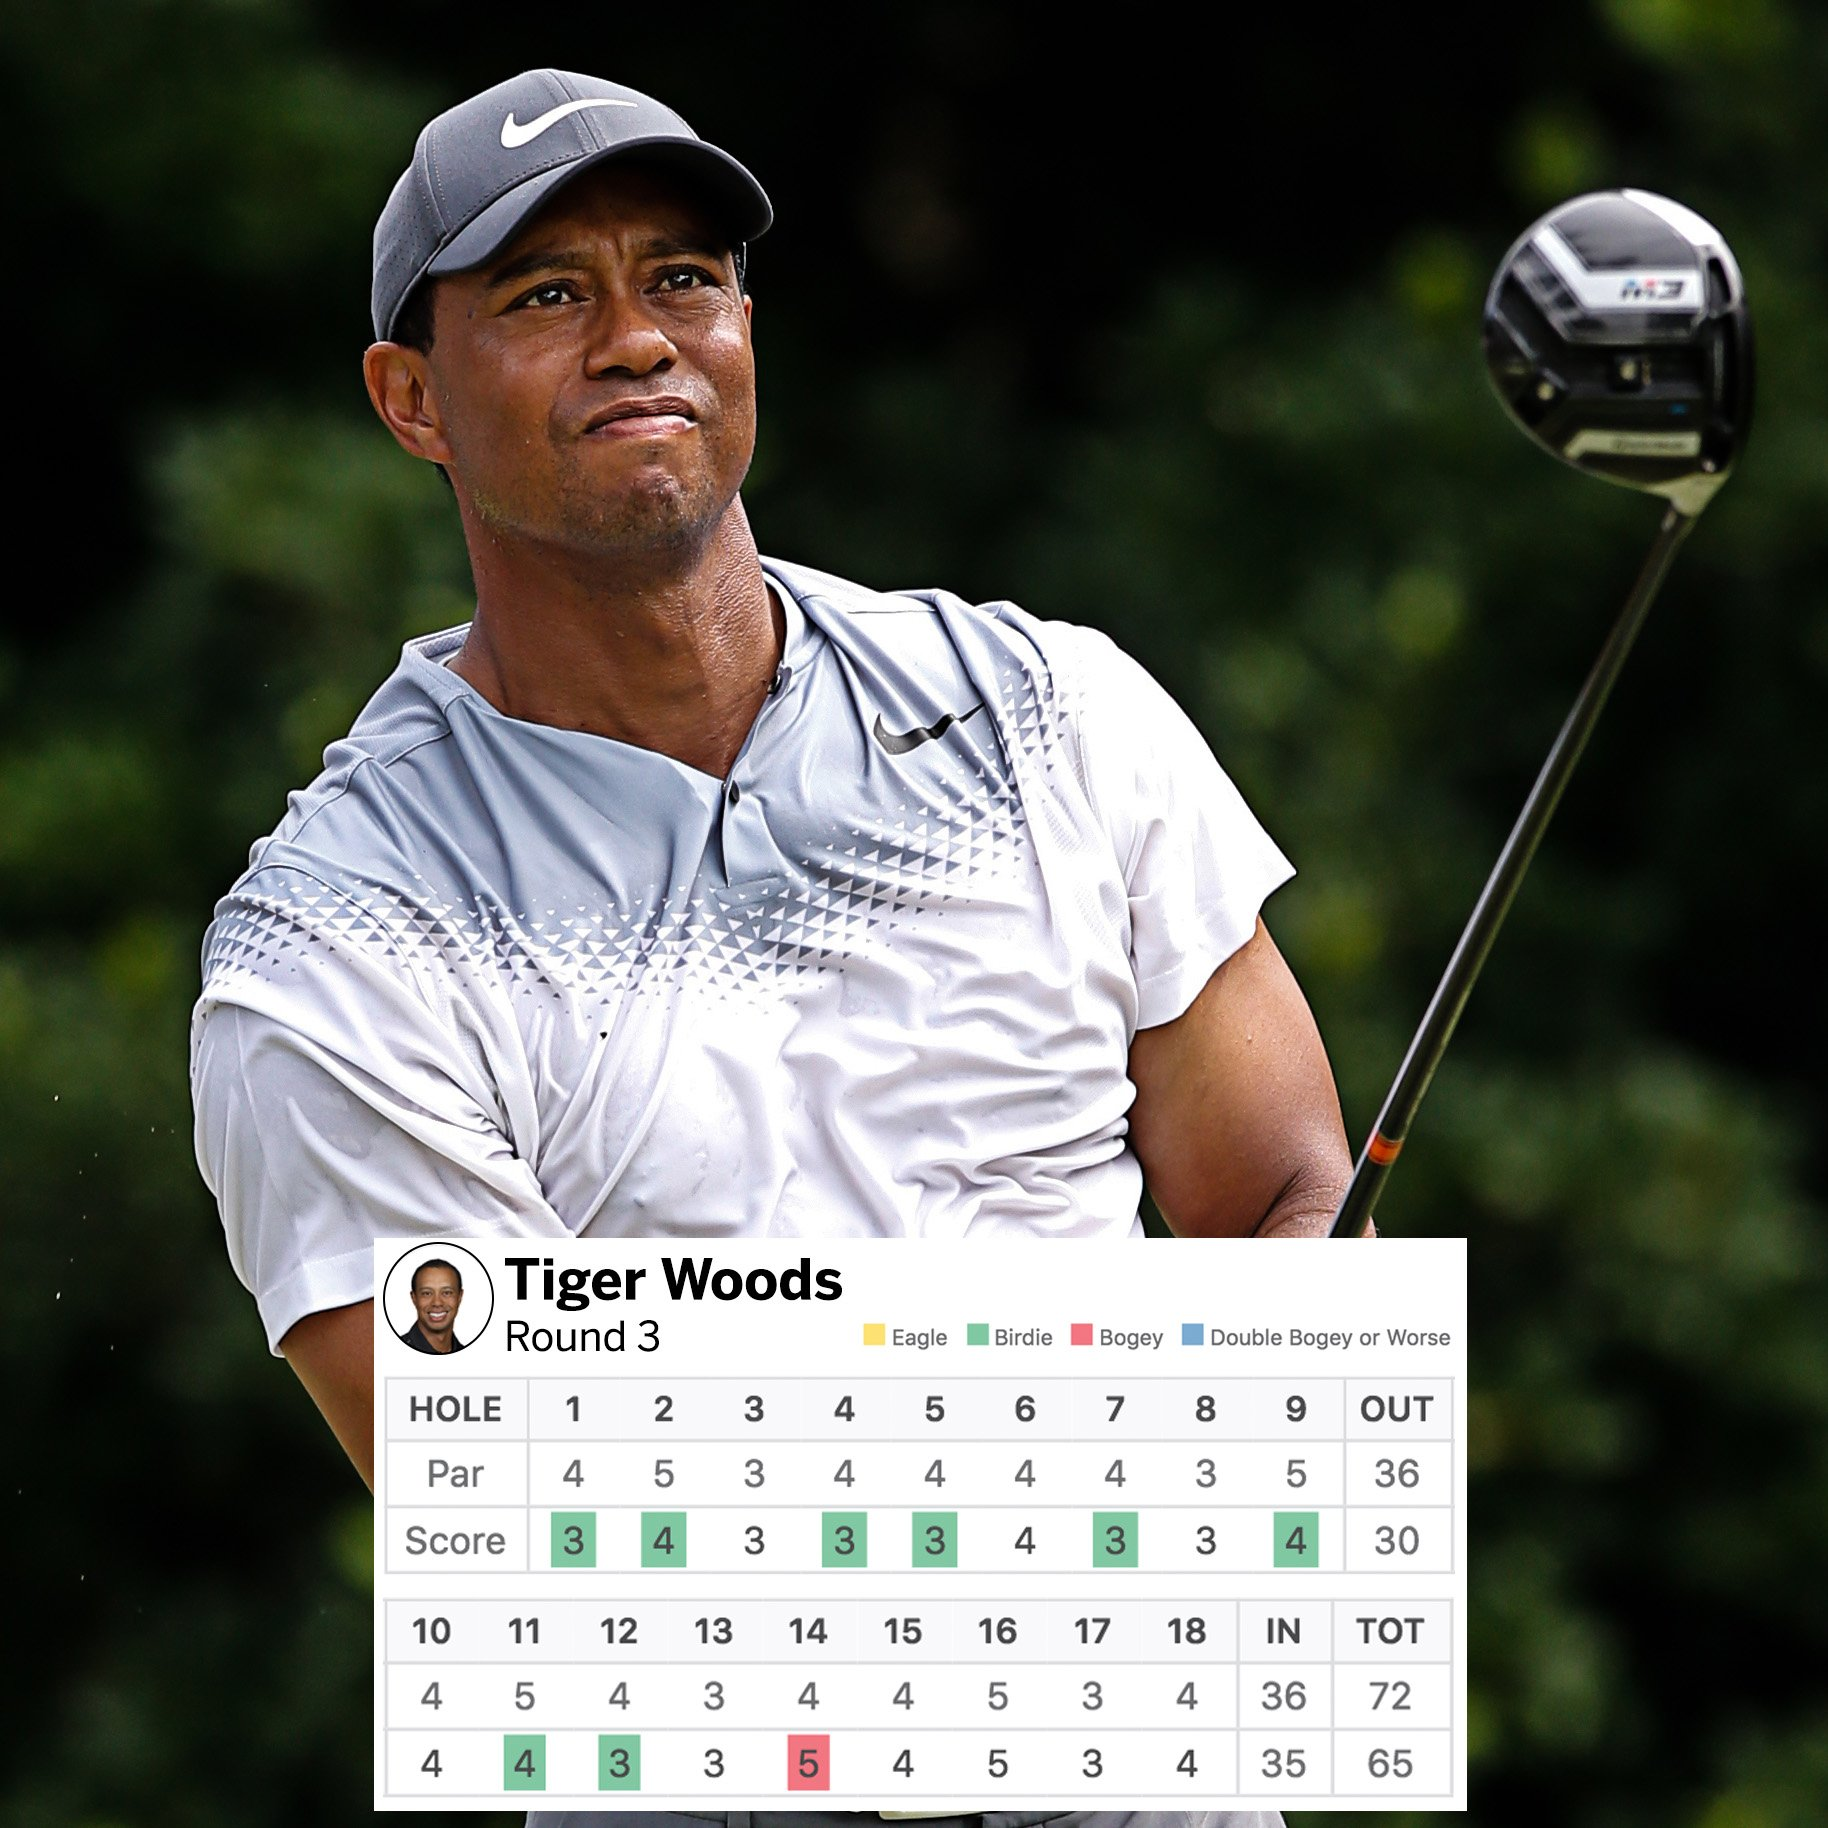 Tiger Woods (-8) cards 65 in the 3rd round, his lowest score ever at The Players Championship. https://t.co/UBCe030XCK